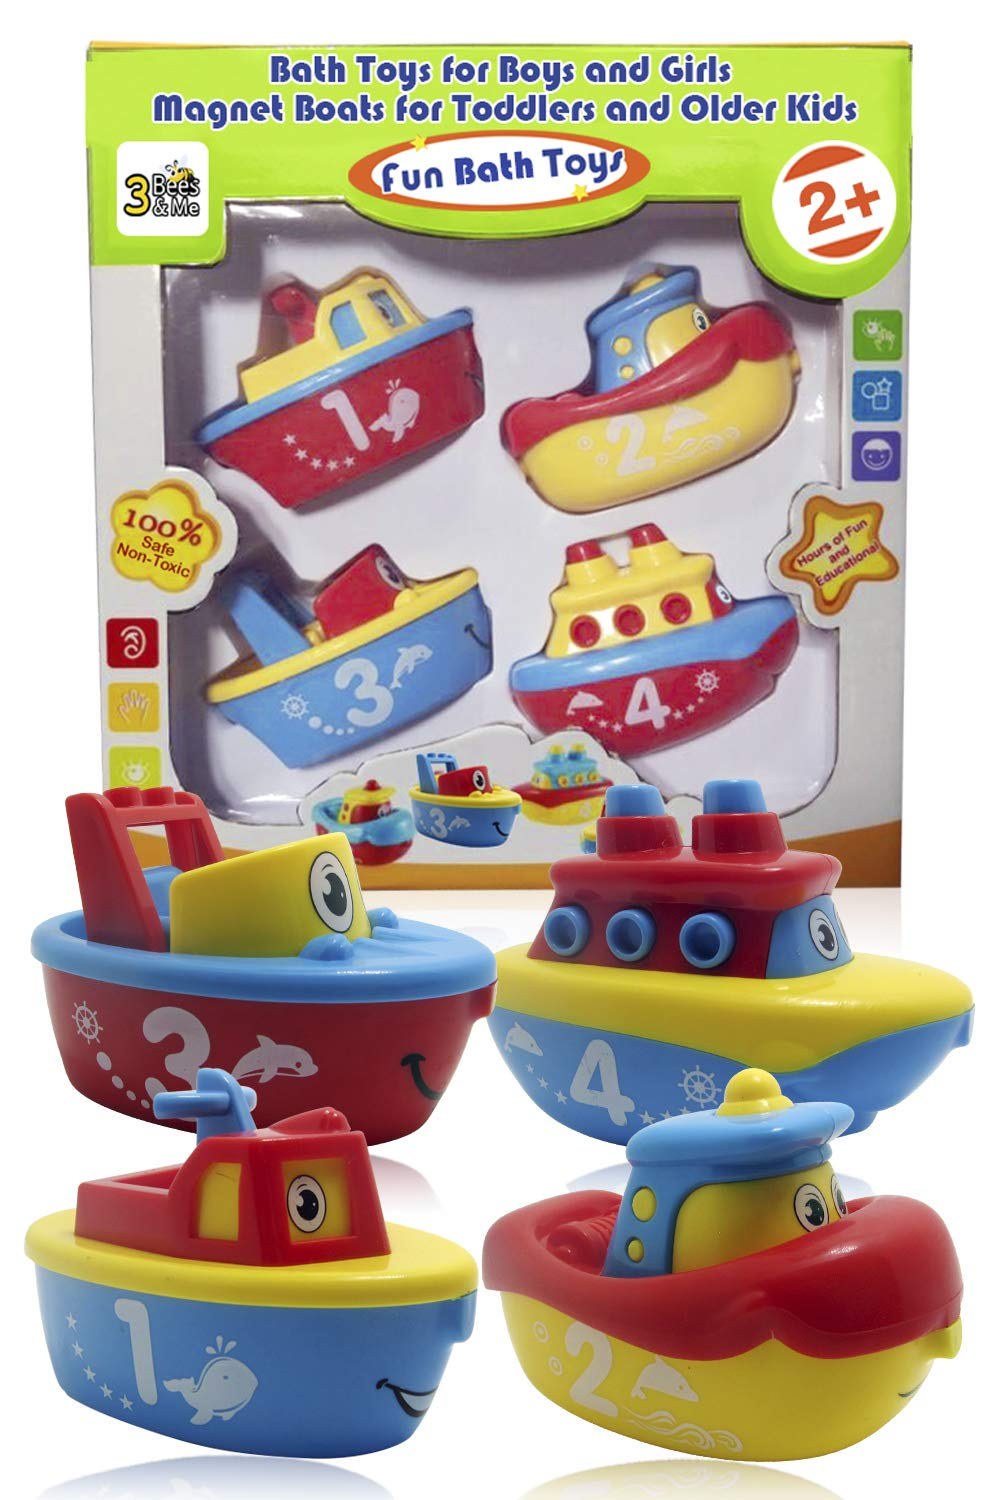 Top 15 Best Bath Toys for Toddlers Reviews in 2019 6